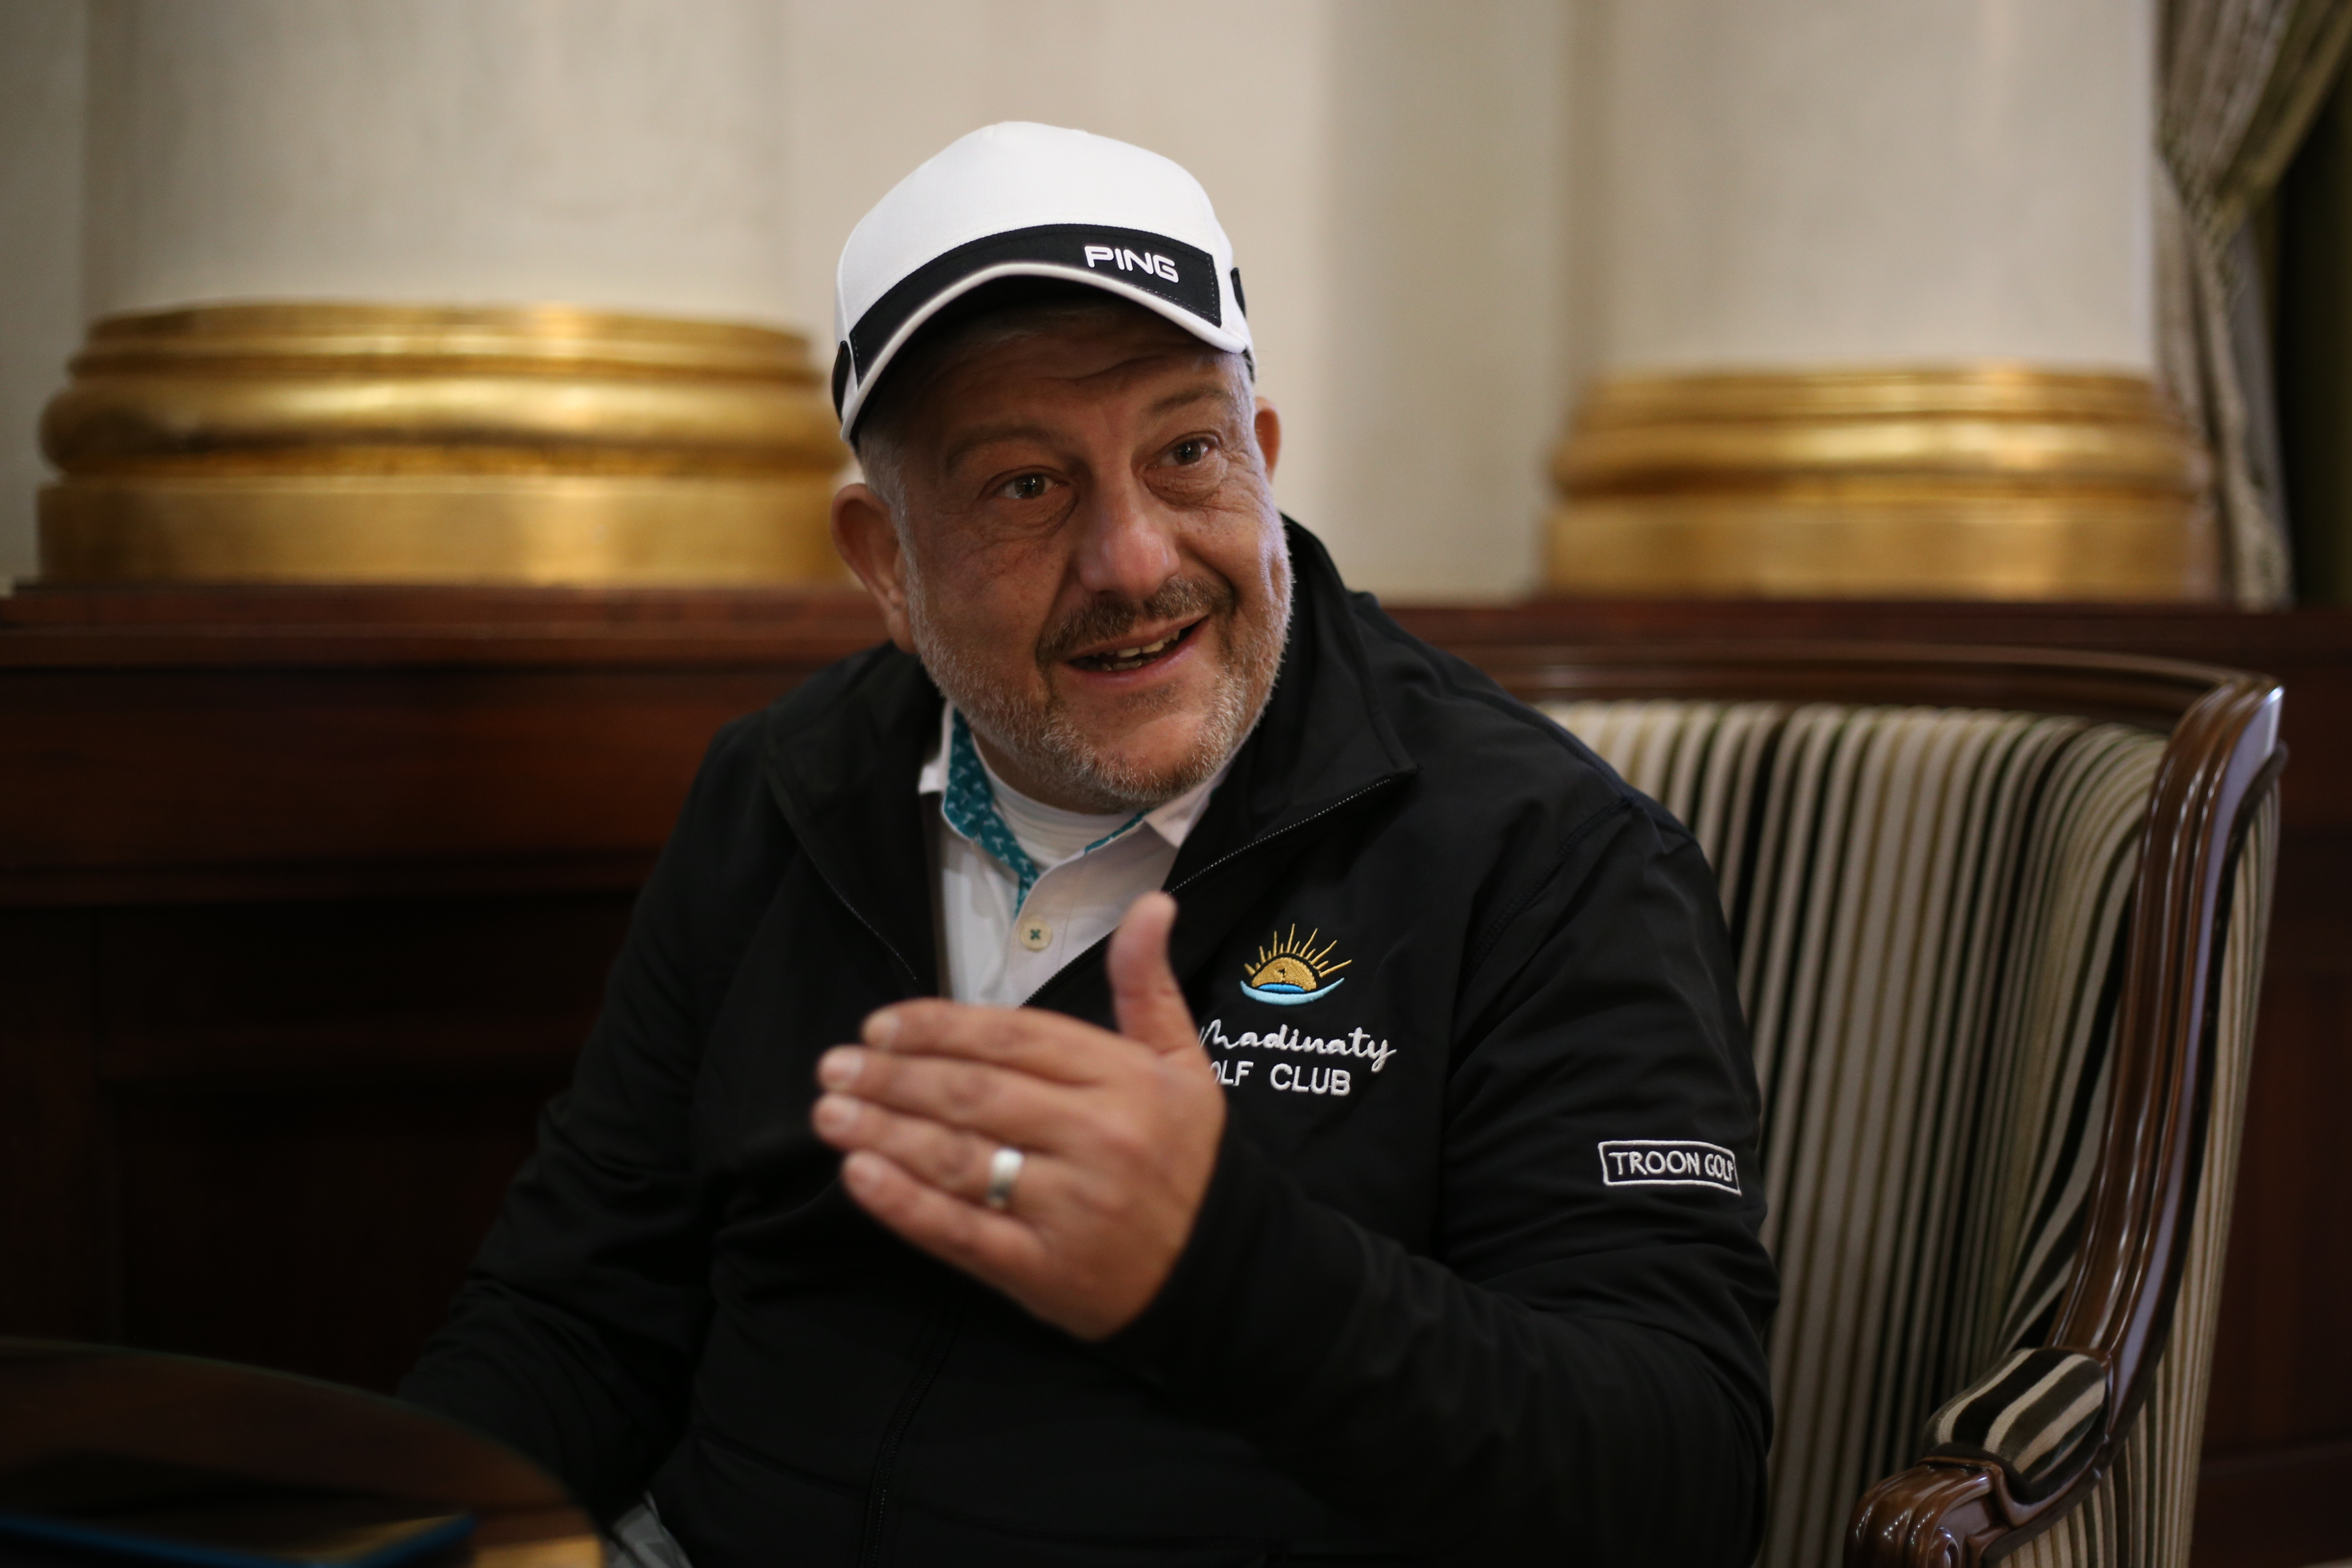 Mohamed Atallah, a board member of the Egyptian Golf Federation